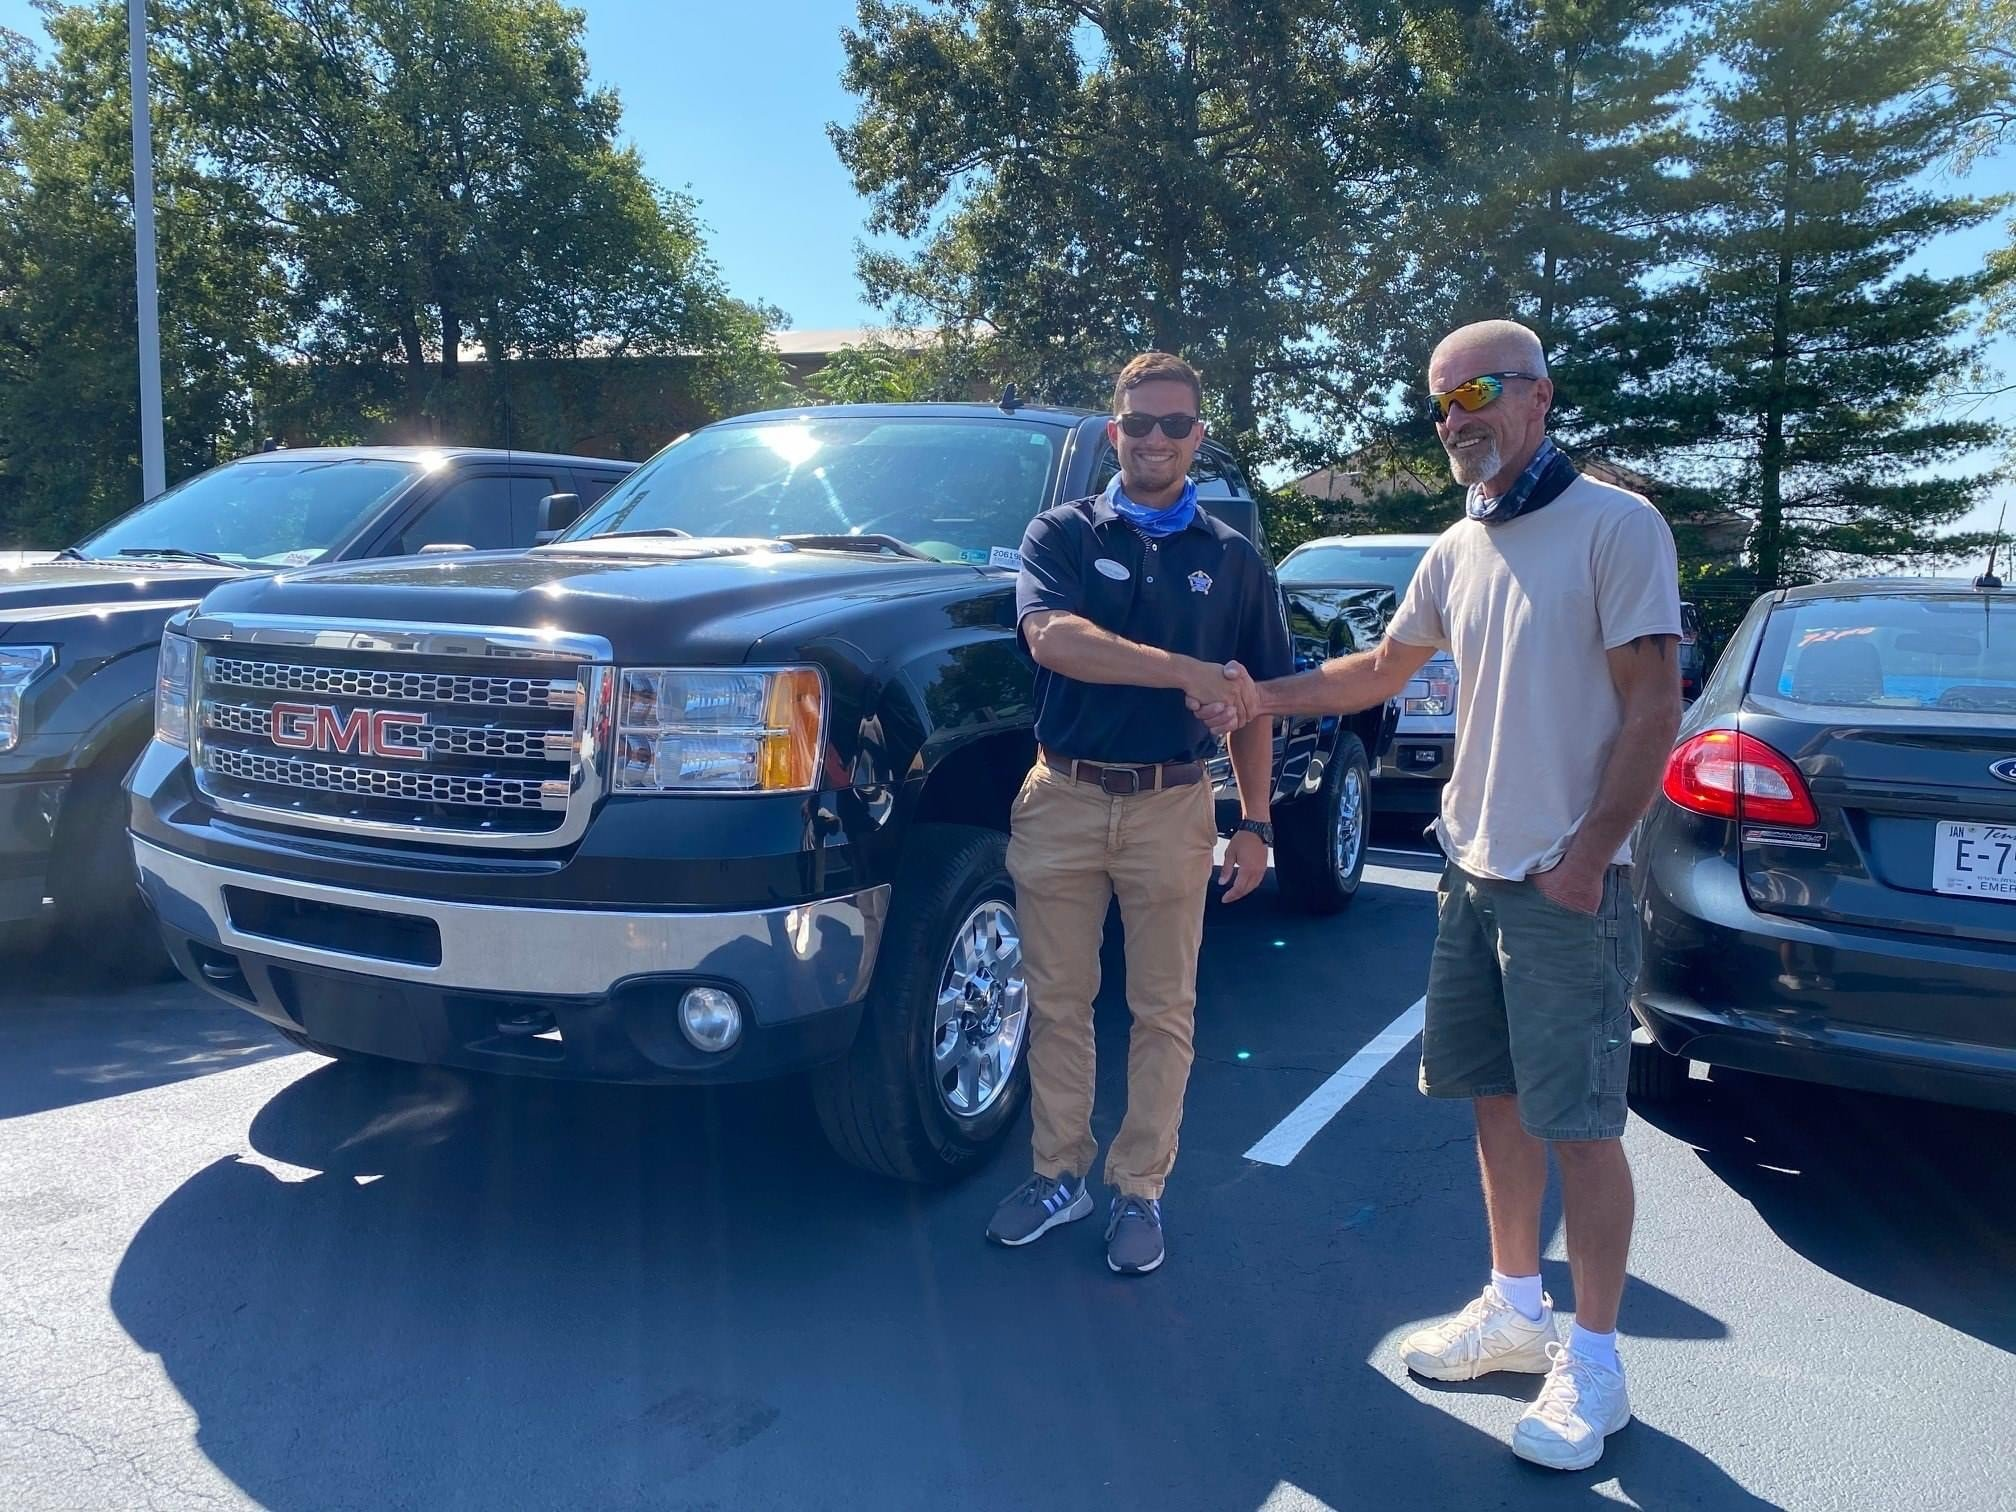 Buying a F250 At marshal mize in Hixson TN, Chattanooga's top rated ford dealership